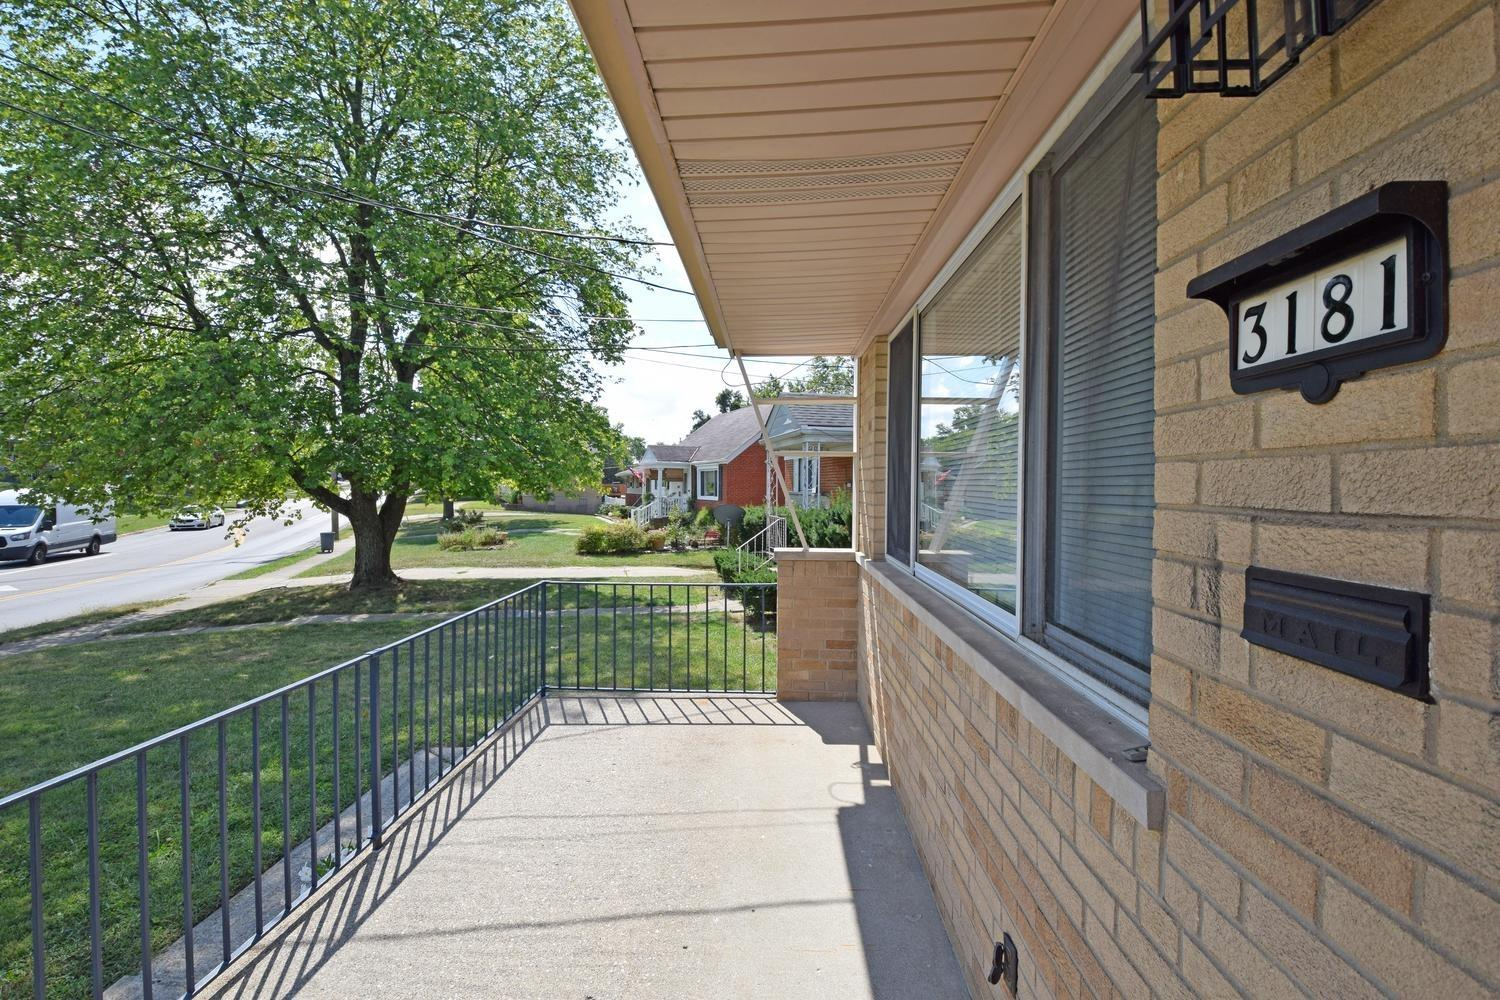 Front porch view of the street